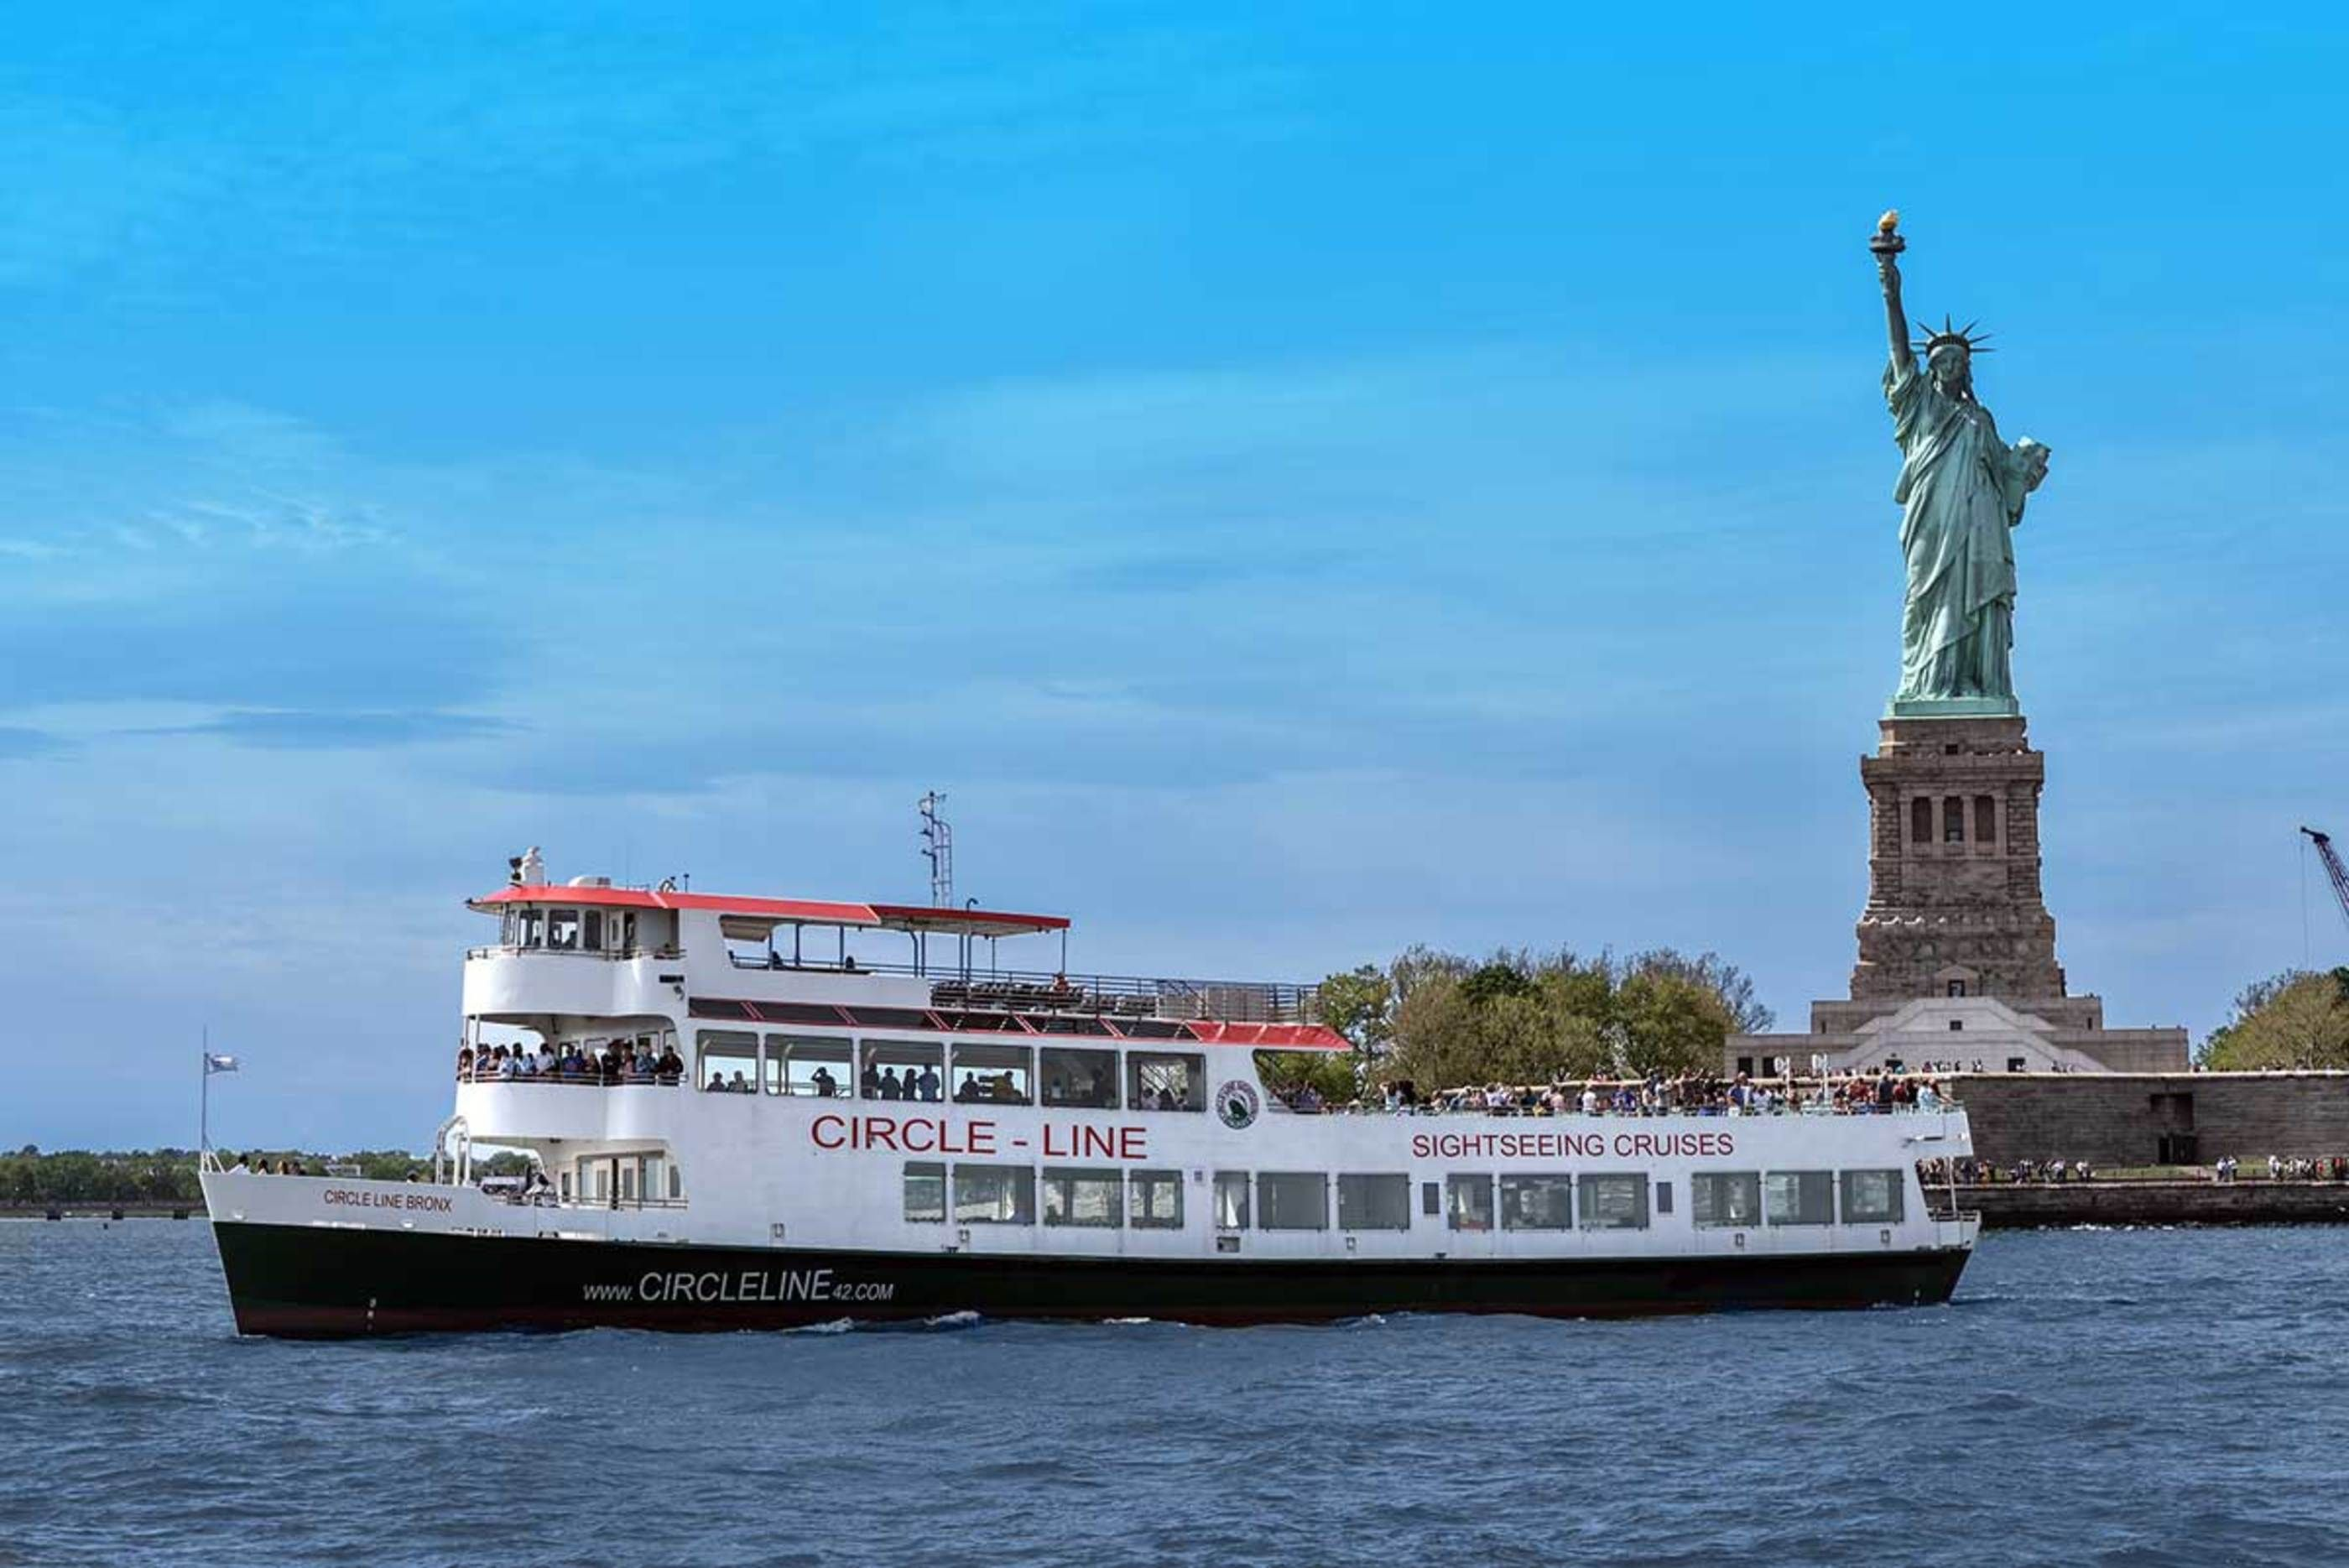 Circle Line Sightseeing Cruises Nyc Guided Boat Tours Of New York America S Favorite Boat Ride Nyc Tours Boat Tours Statue Of Liberty